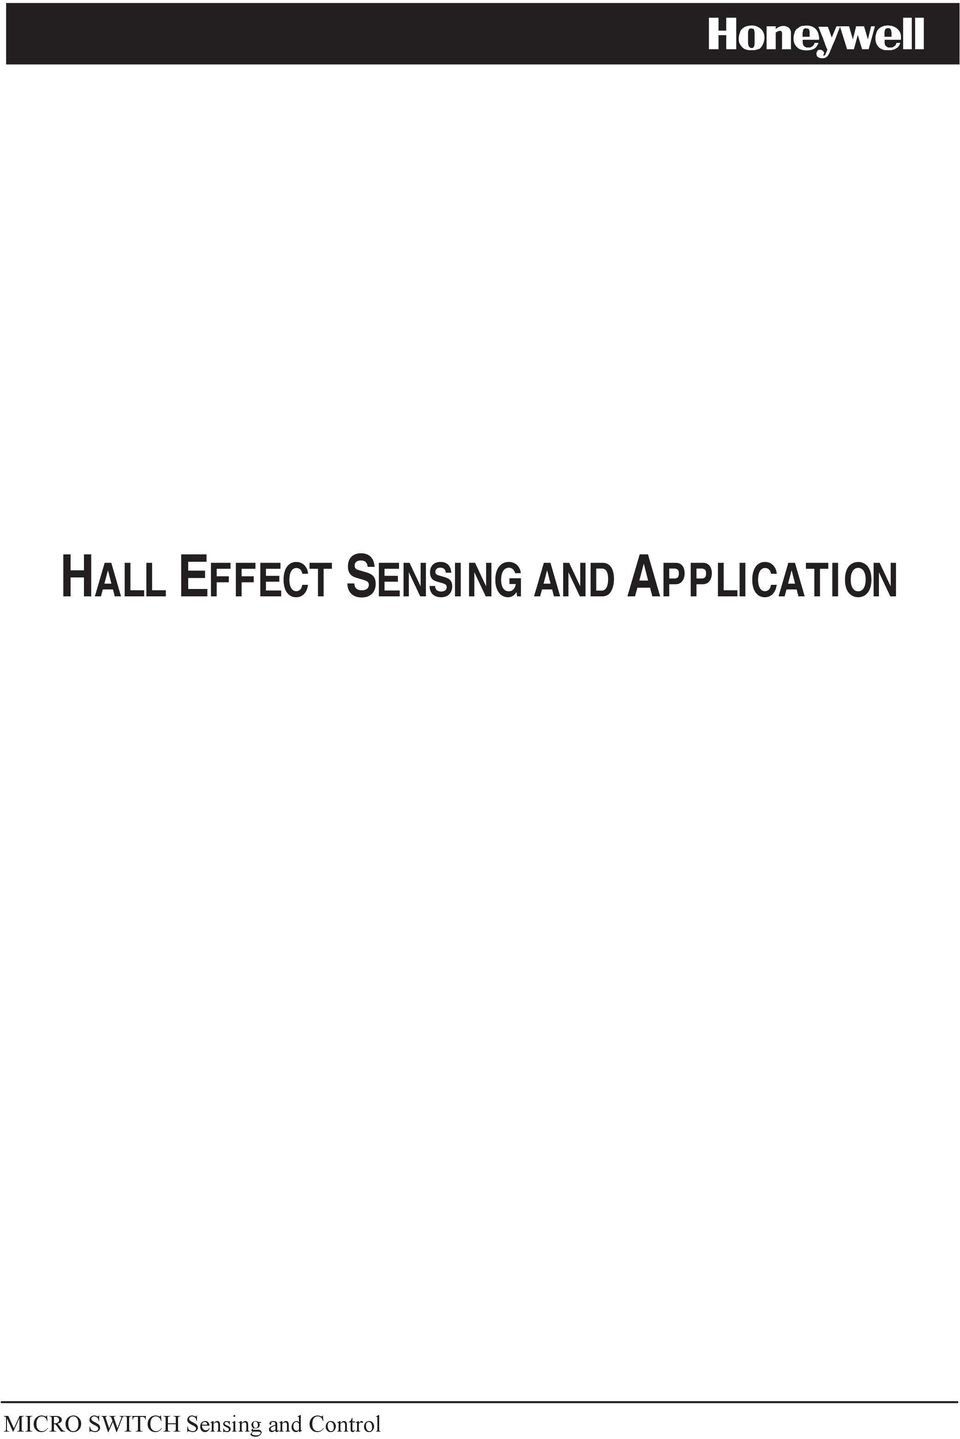 Hall Effect Sensing And Application Pdf Halleffect Integrated Circuit Ic Sensors 2 7deohrirqwhqwv Chapter 1 Introduction Why Use The Using This Manual